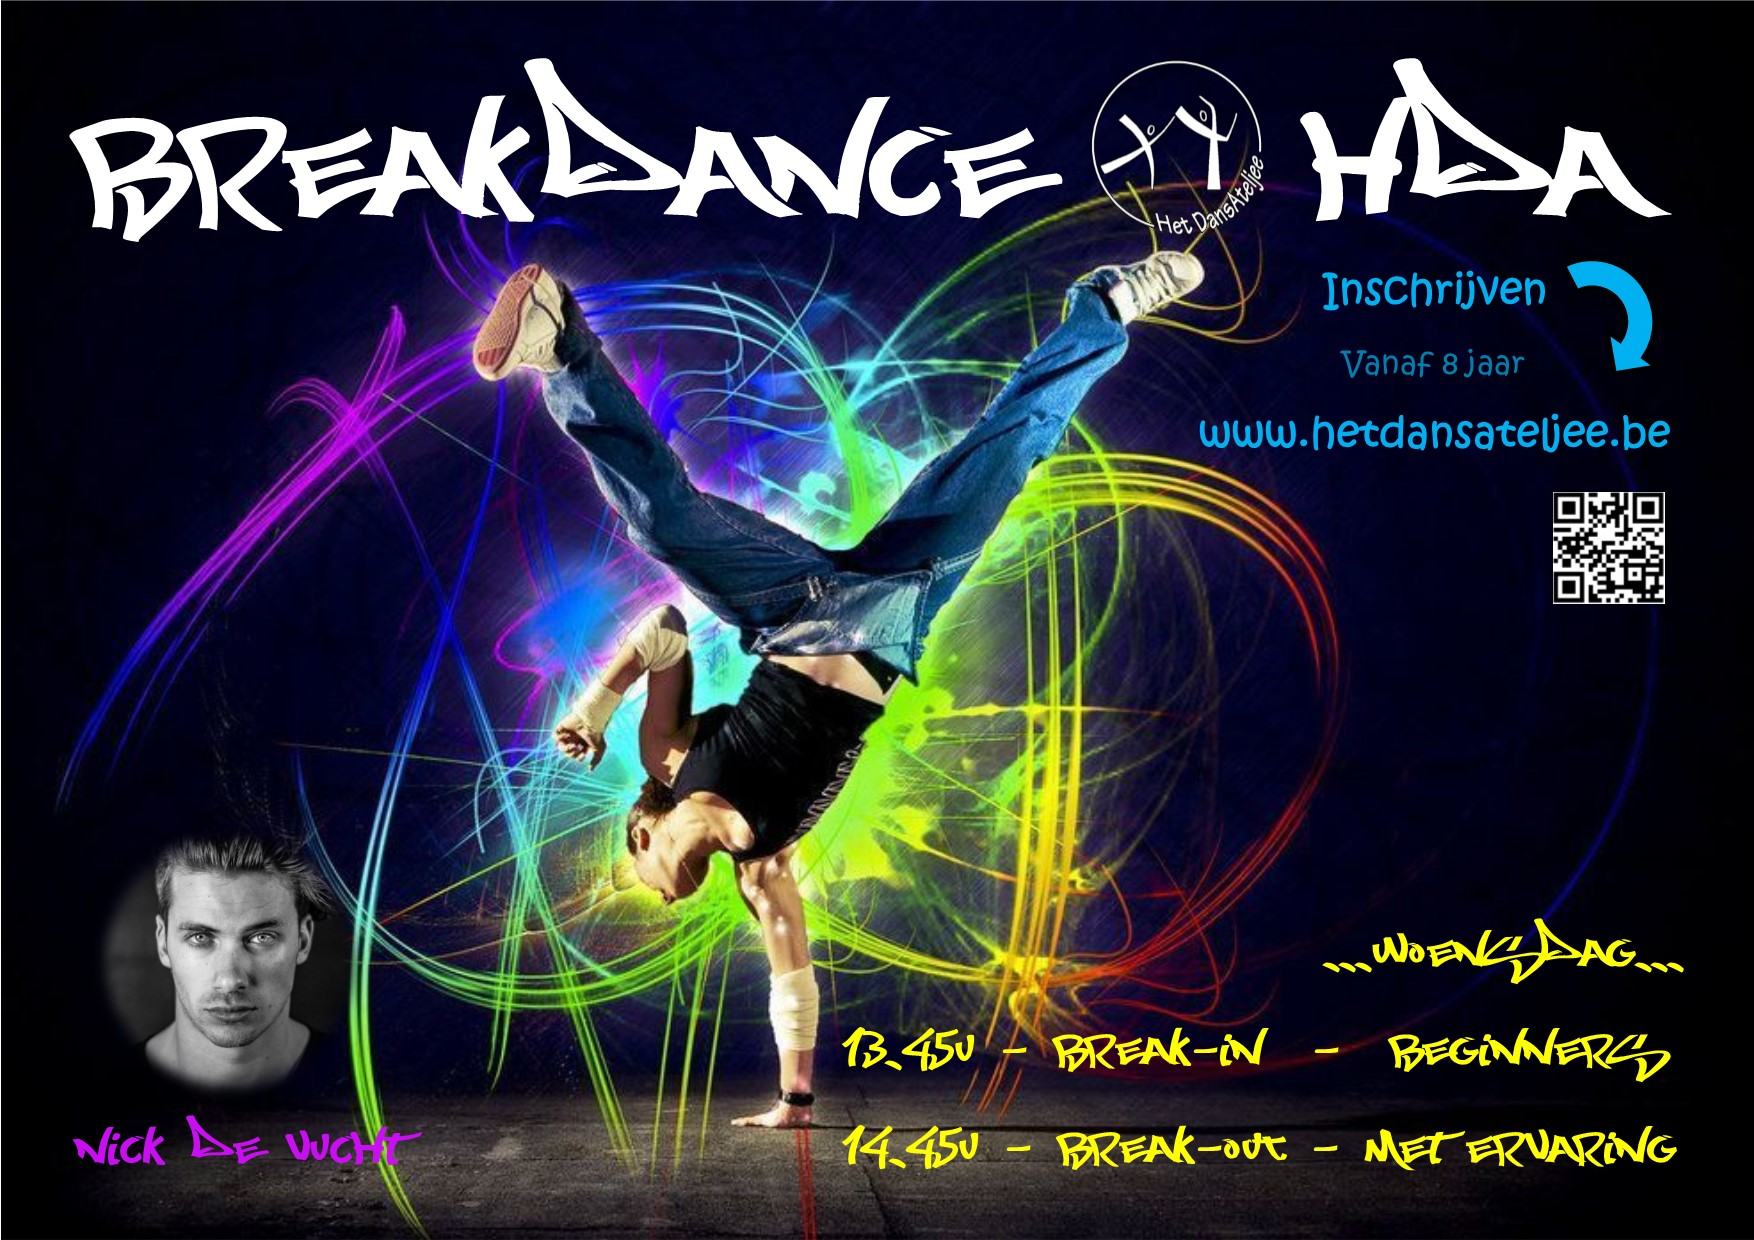 Breakdance@HDA